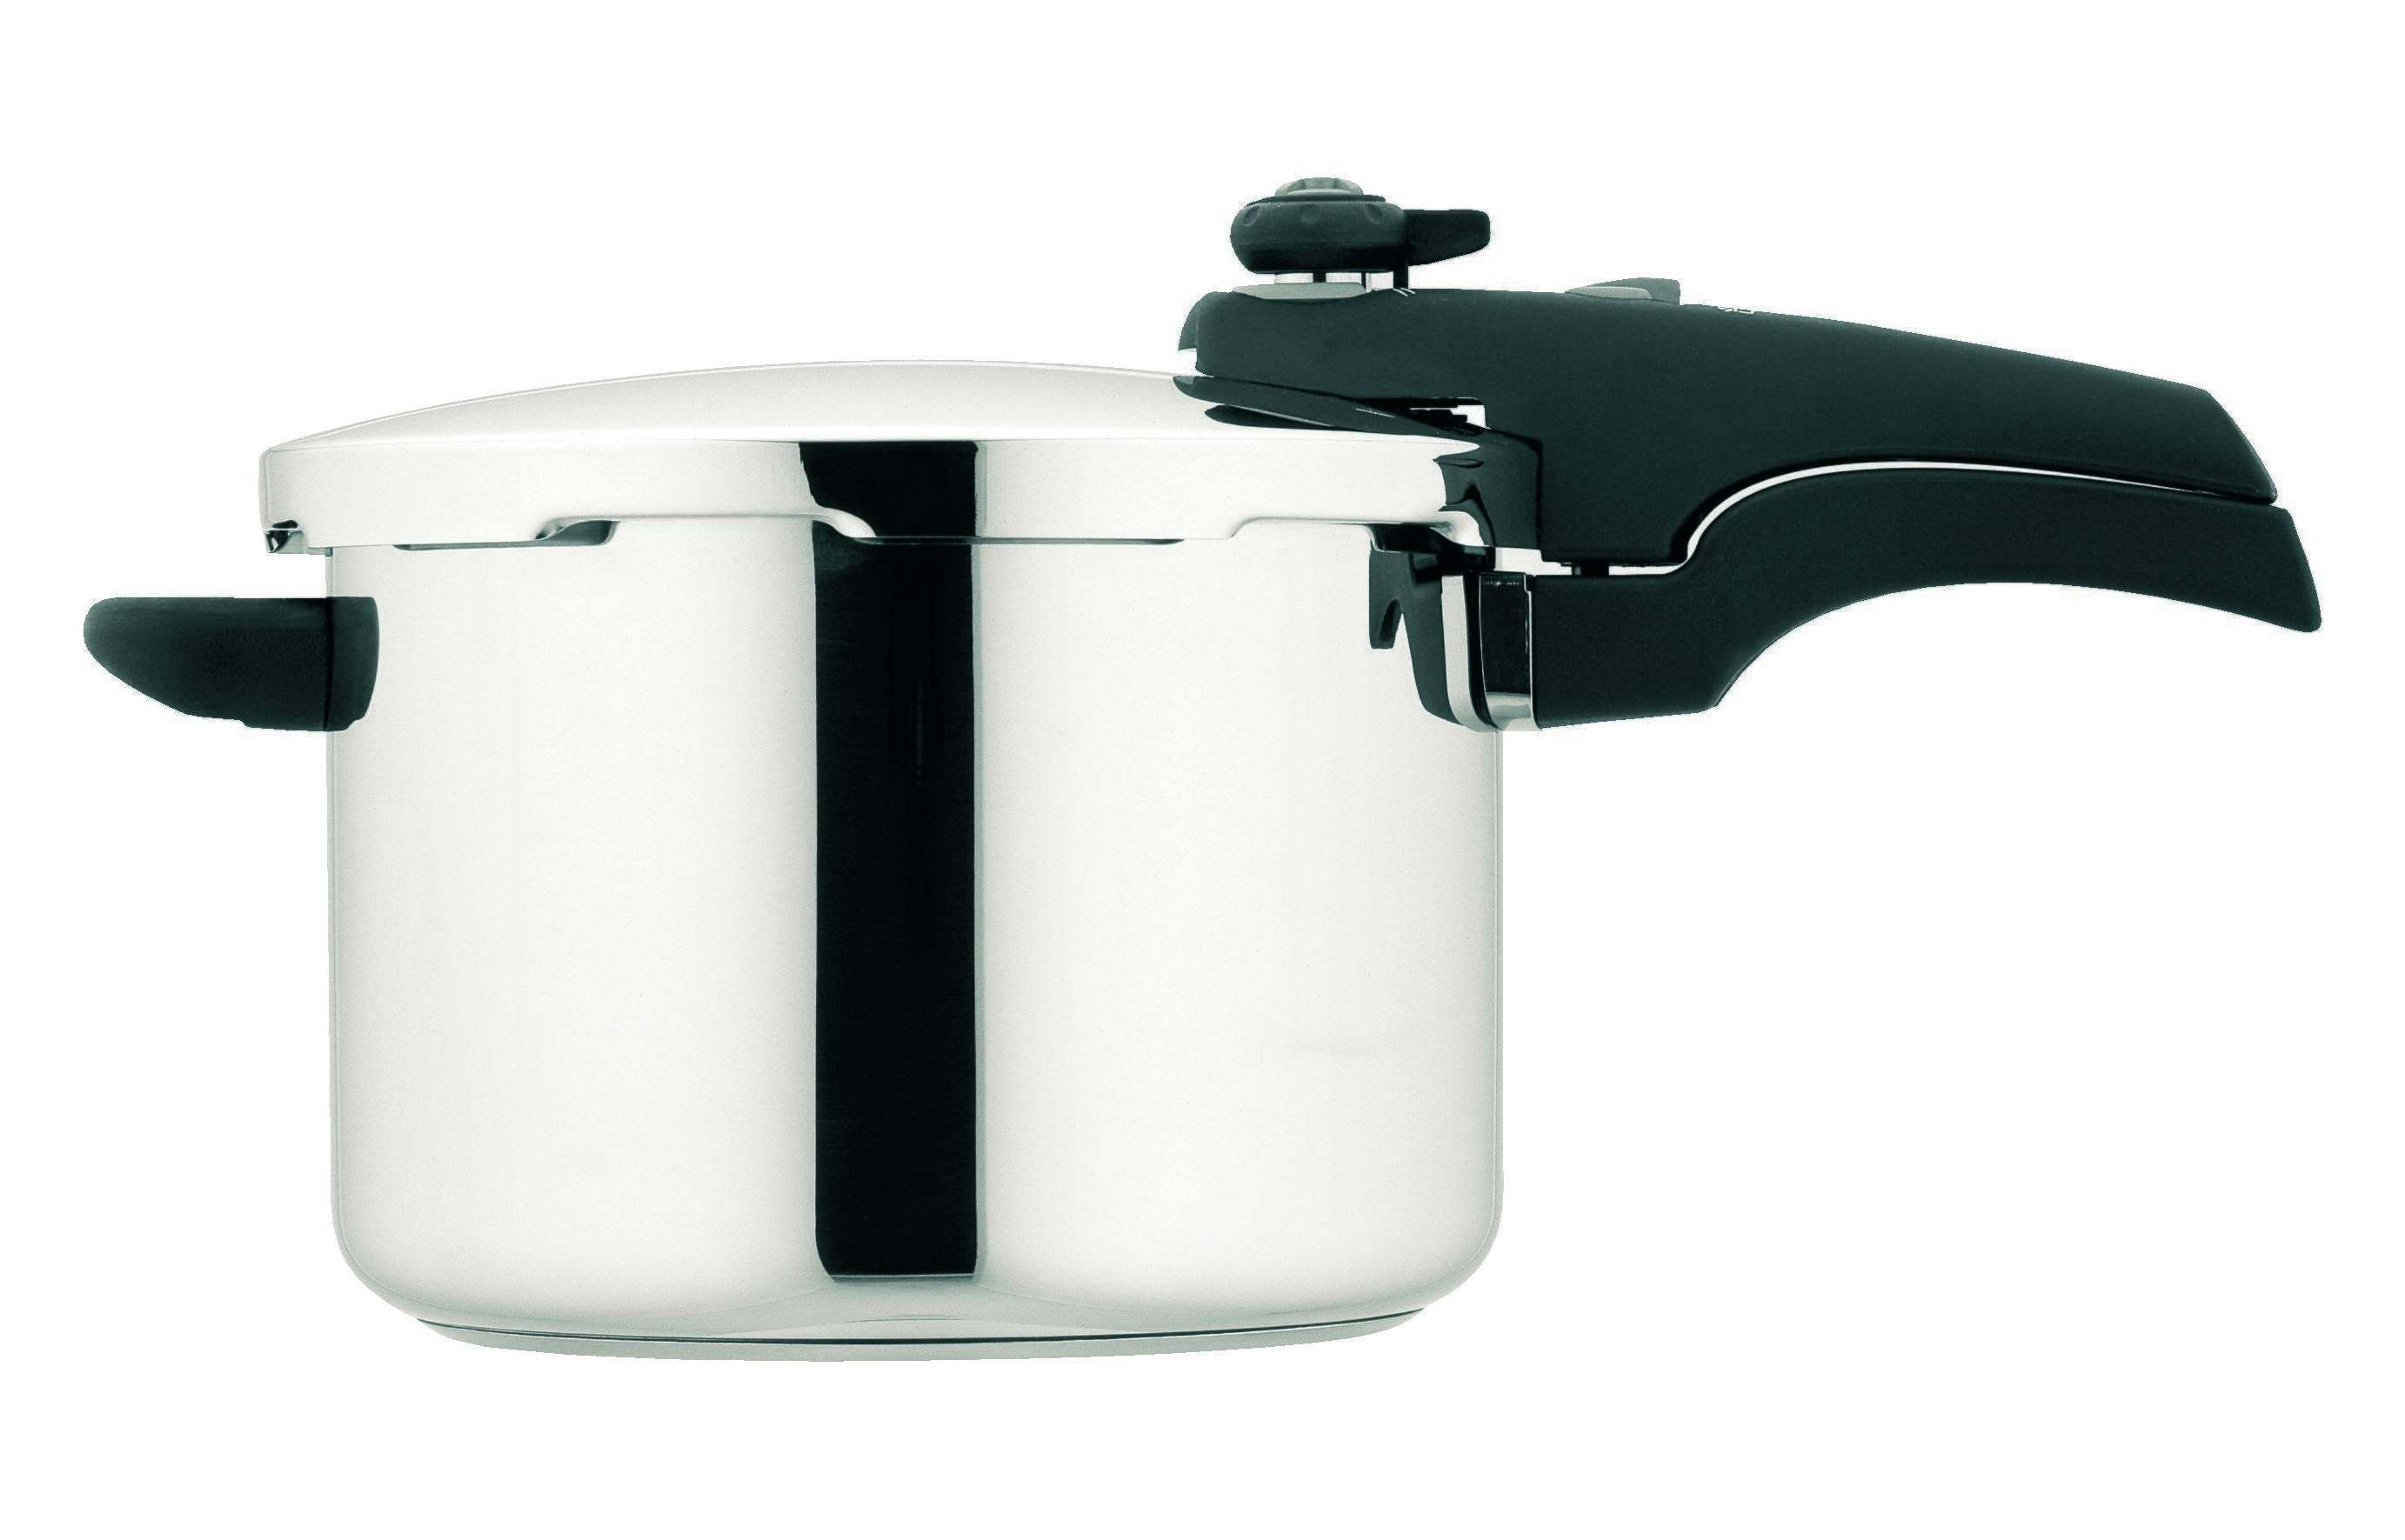 Smart Plus 6L stainless steel pressure cooker